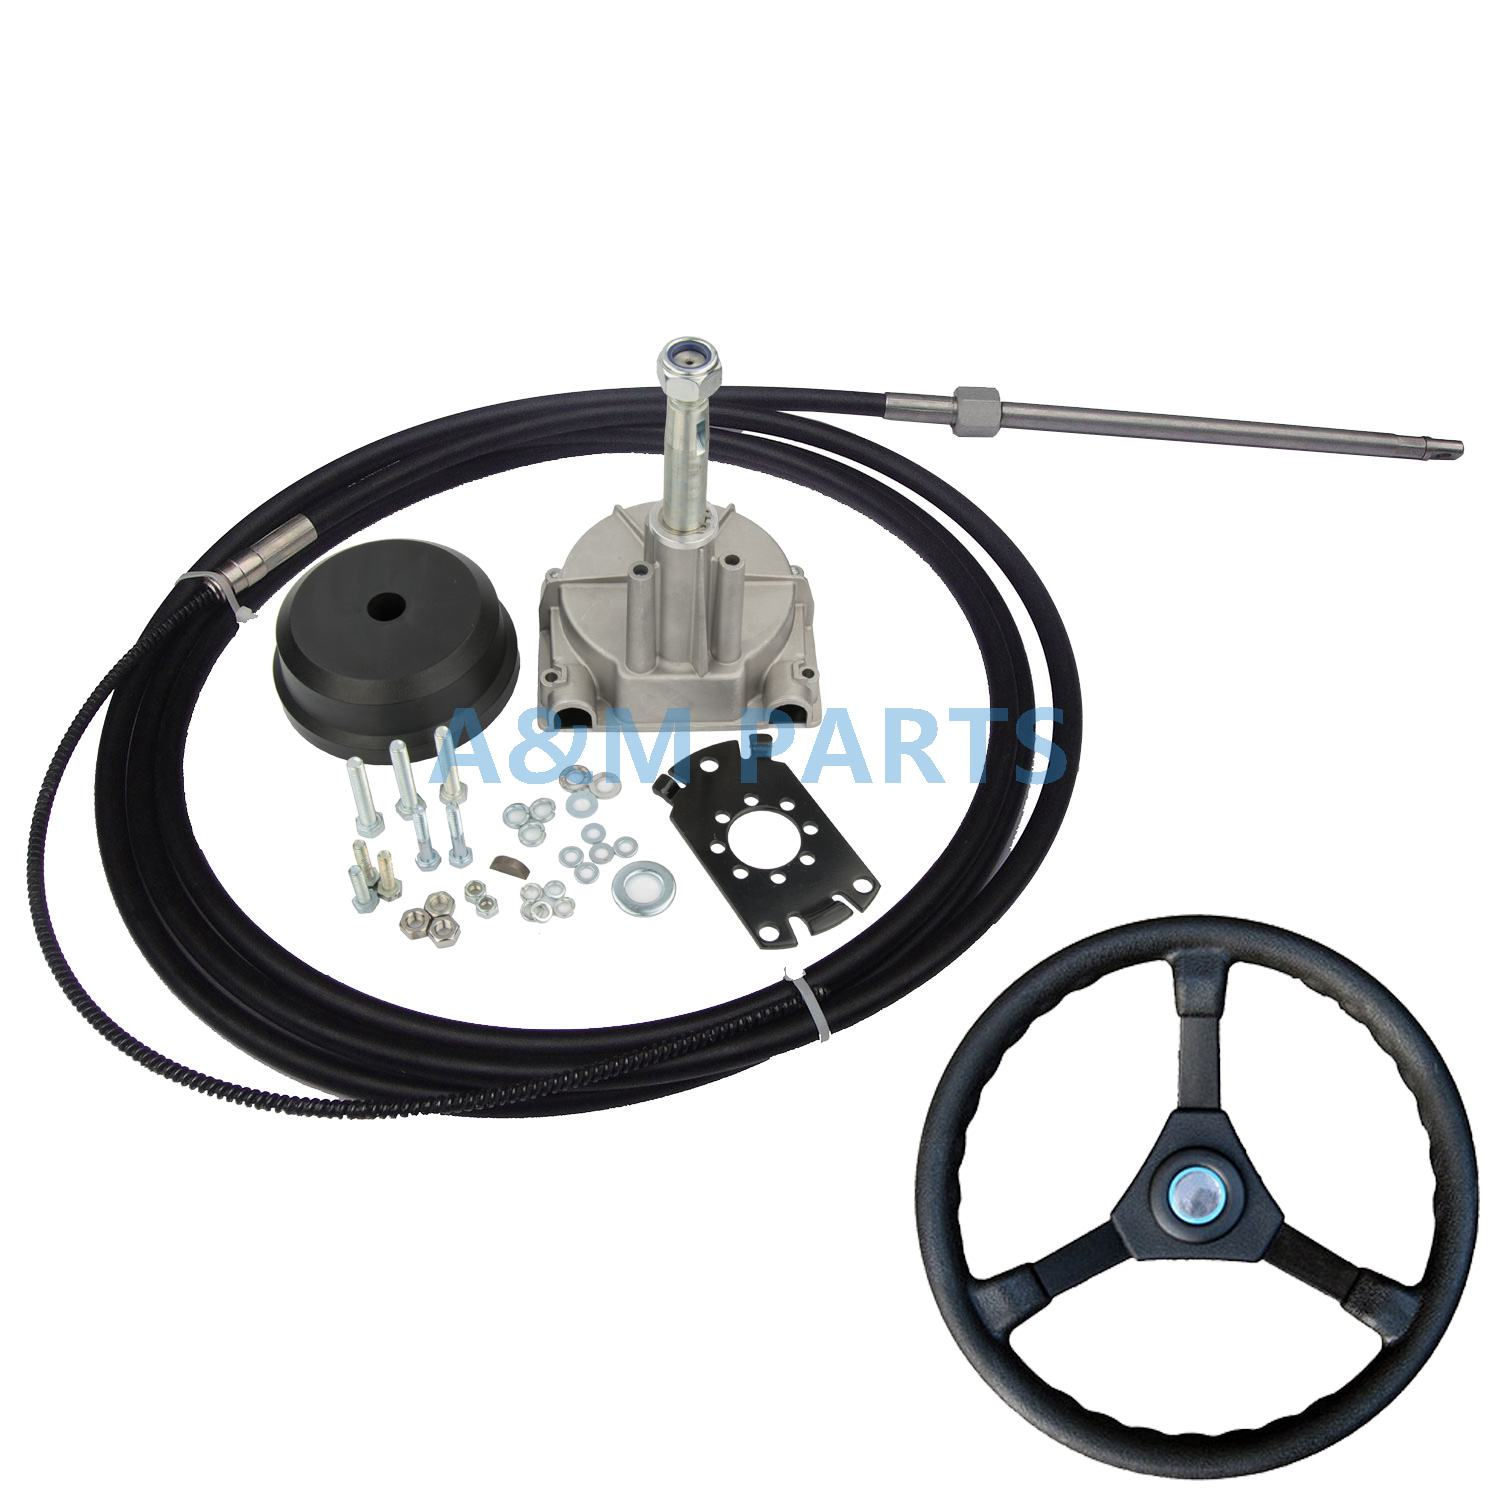 17FT Boat Single Turbine Rotary Steering Helm W/ Outboard Steering Cable Wheel